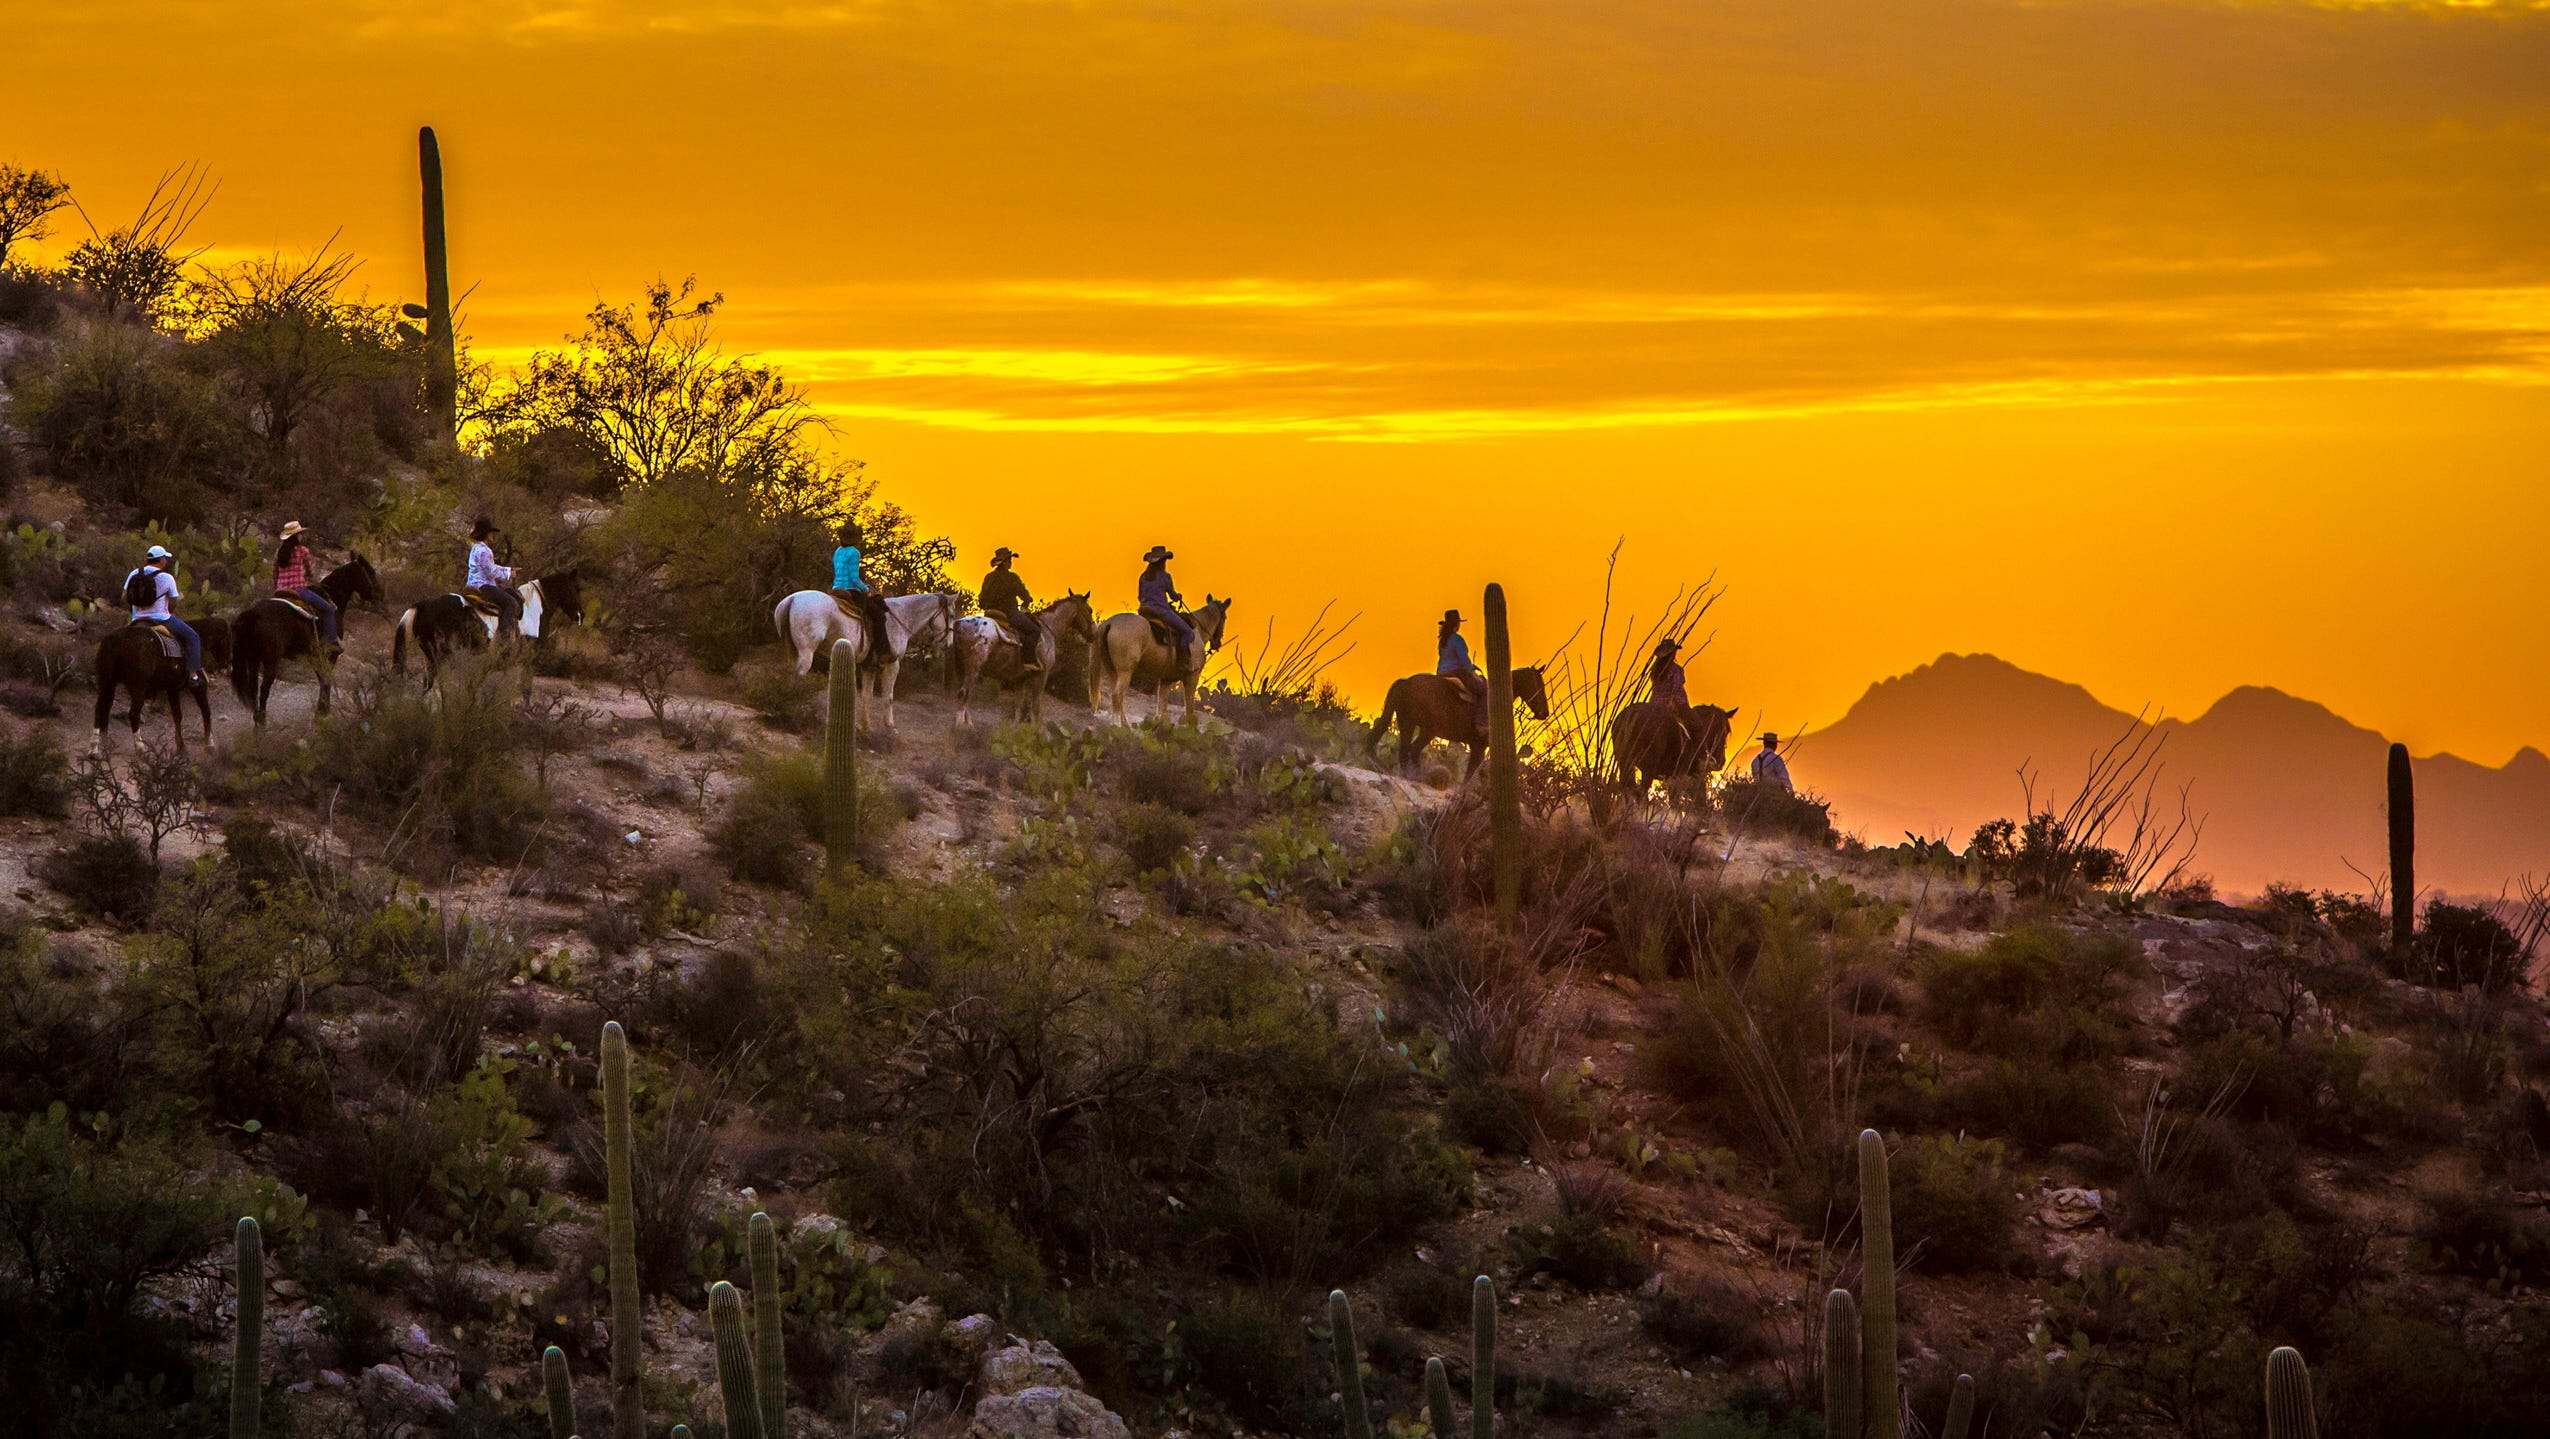 Cowboy living comes with a Southwest flavor at Tucson's Tanque Verde Ranch, which Ehringer calls the state's premier ranch resort.